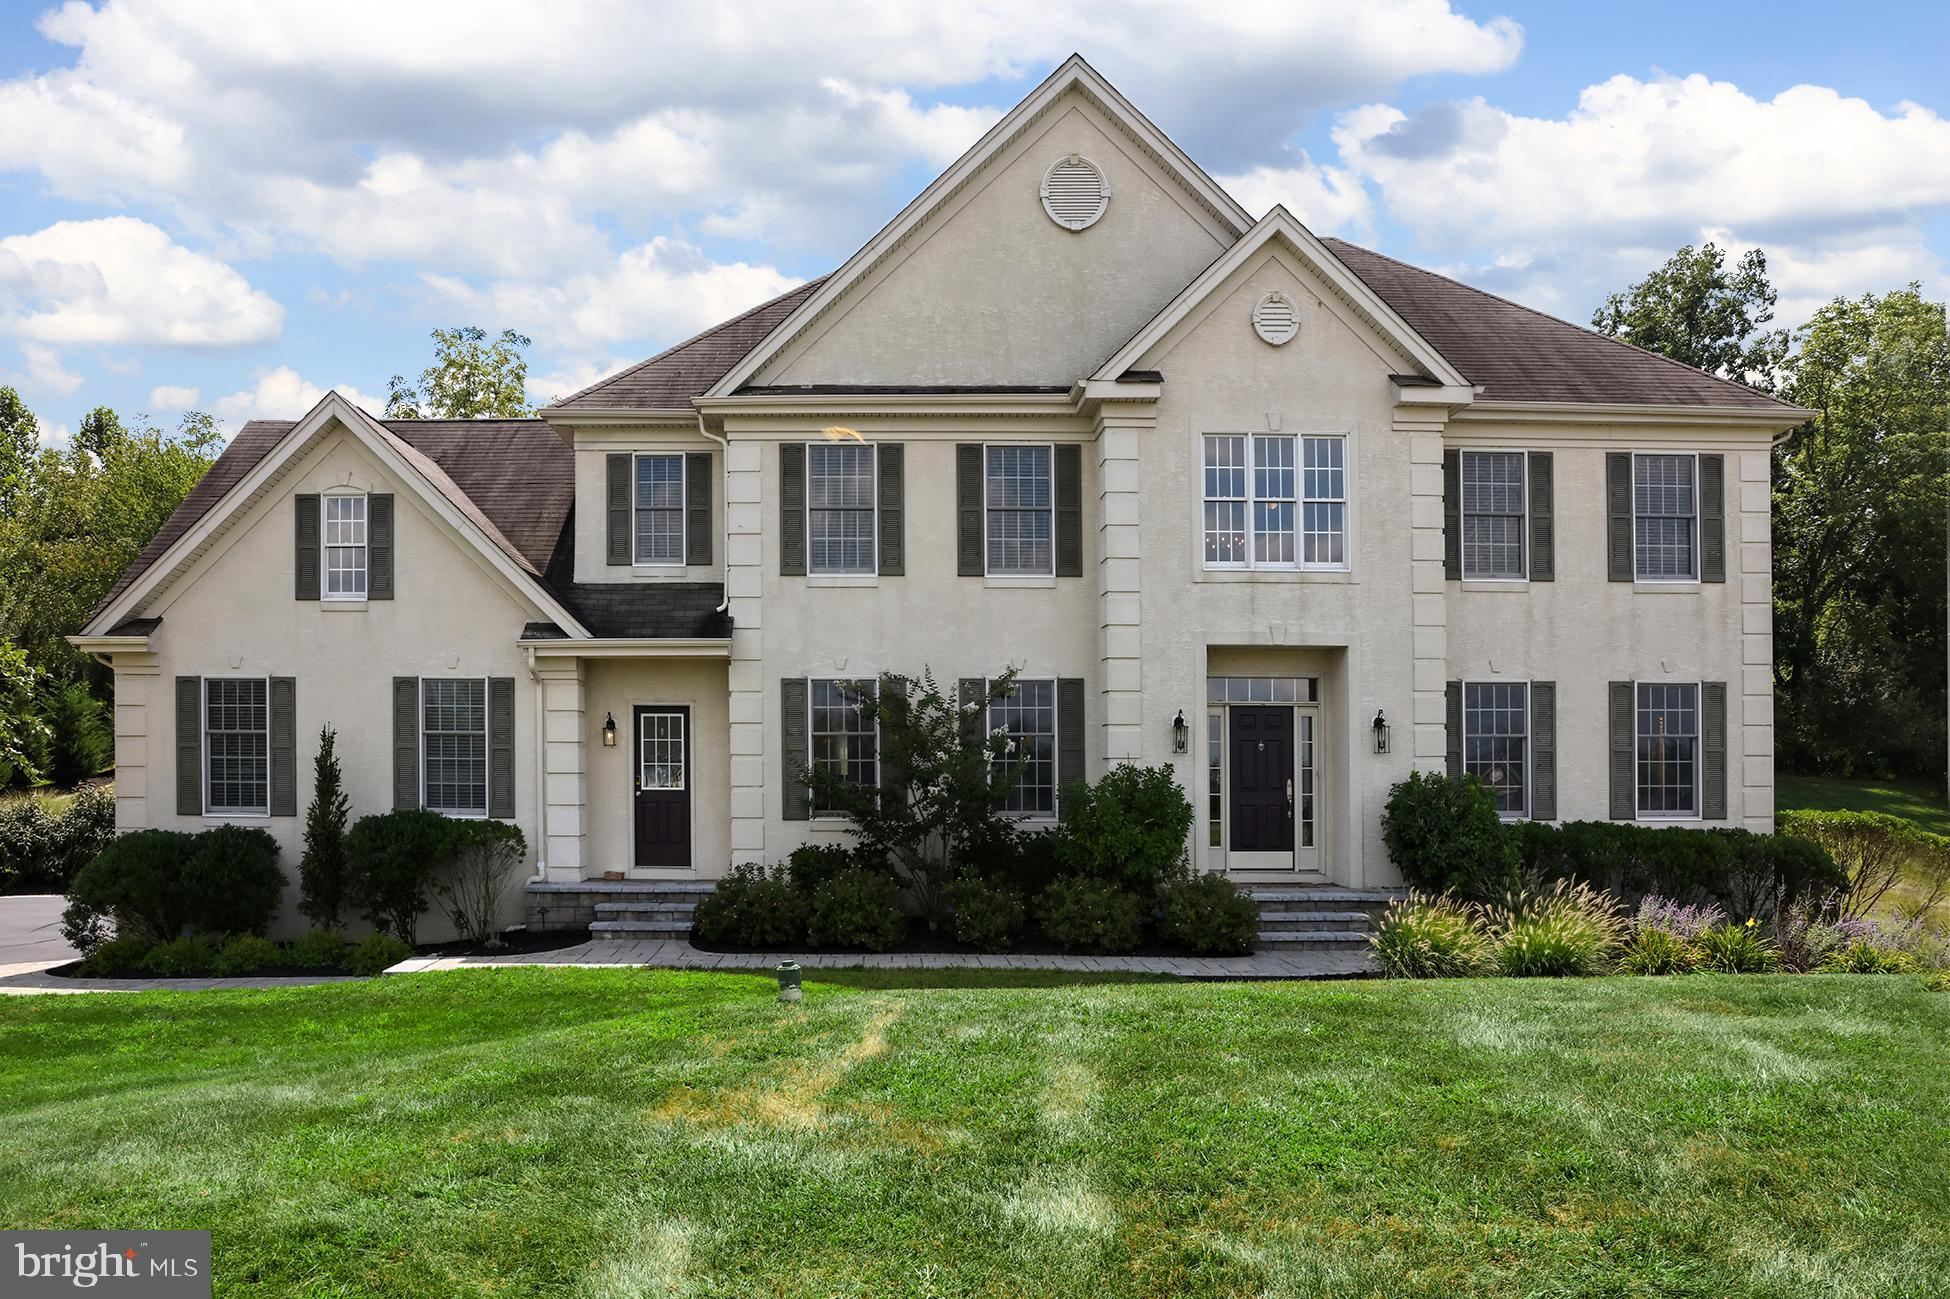 25 ROSE RUN, LAMBERTVILLE, NJ 08530